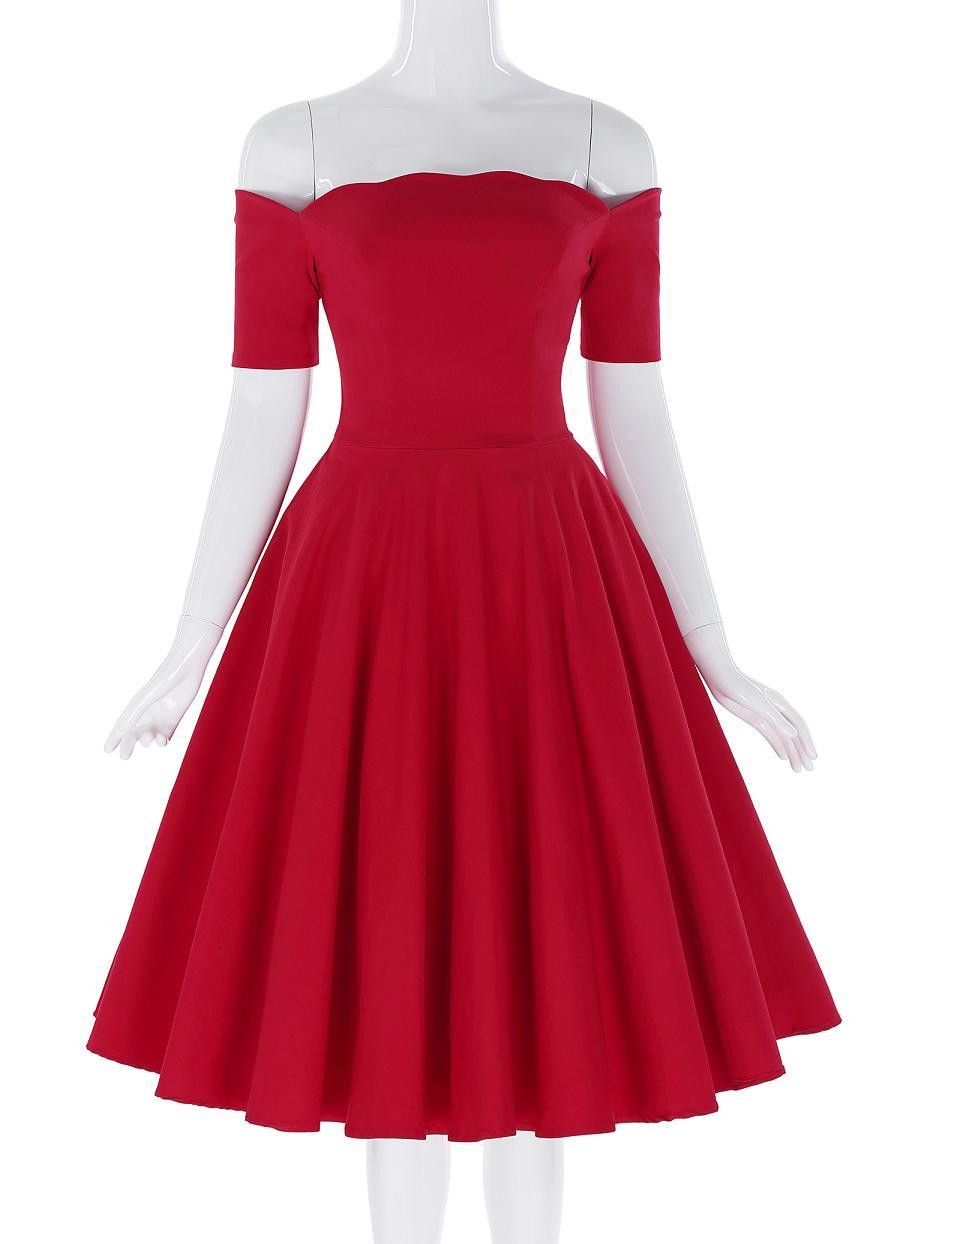 Vintage Off Shoulder Retro Rockabilly Swing Party Dresses 1950s 60s ... b5e82d51b727